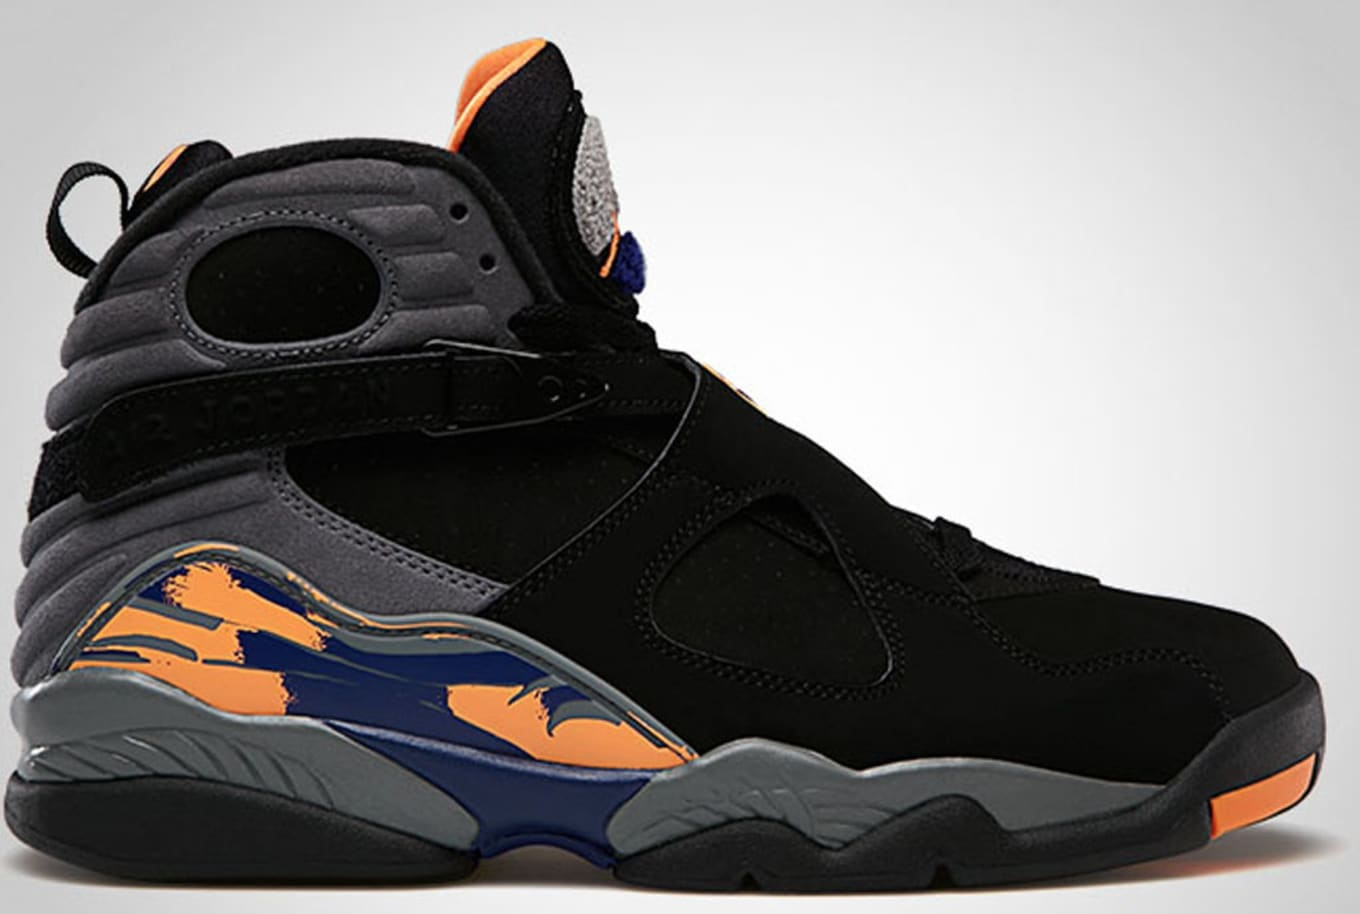 d9cbc9bf715ee4 The Air Jordan 8 Price Guide